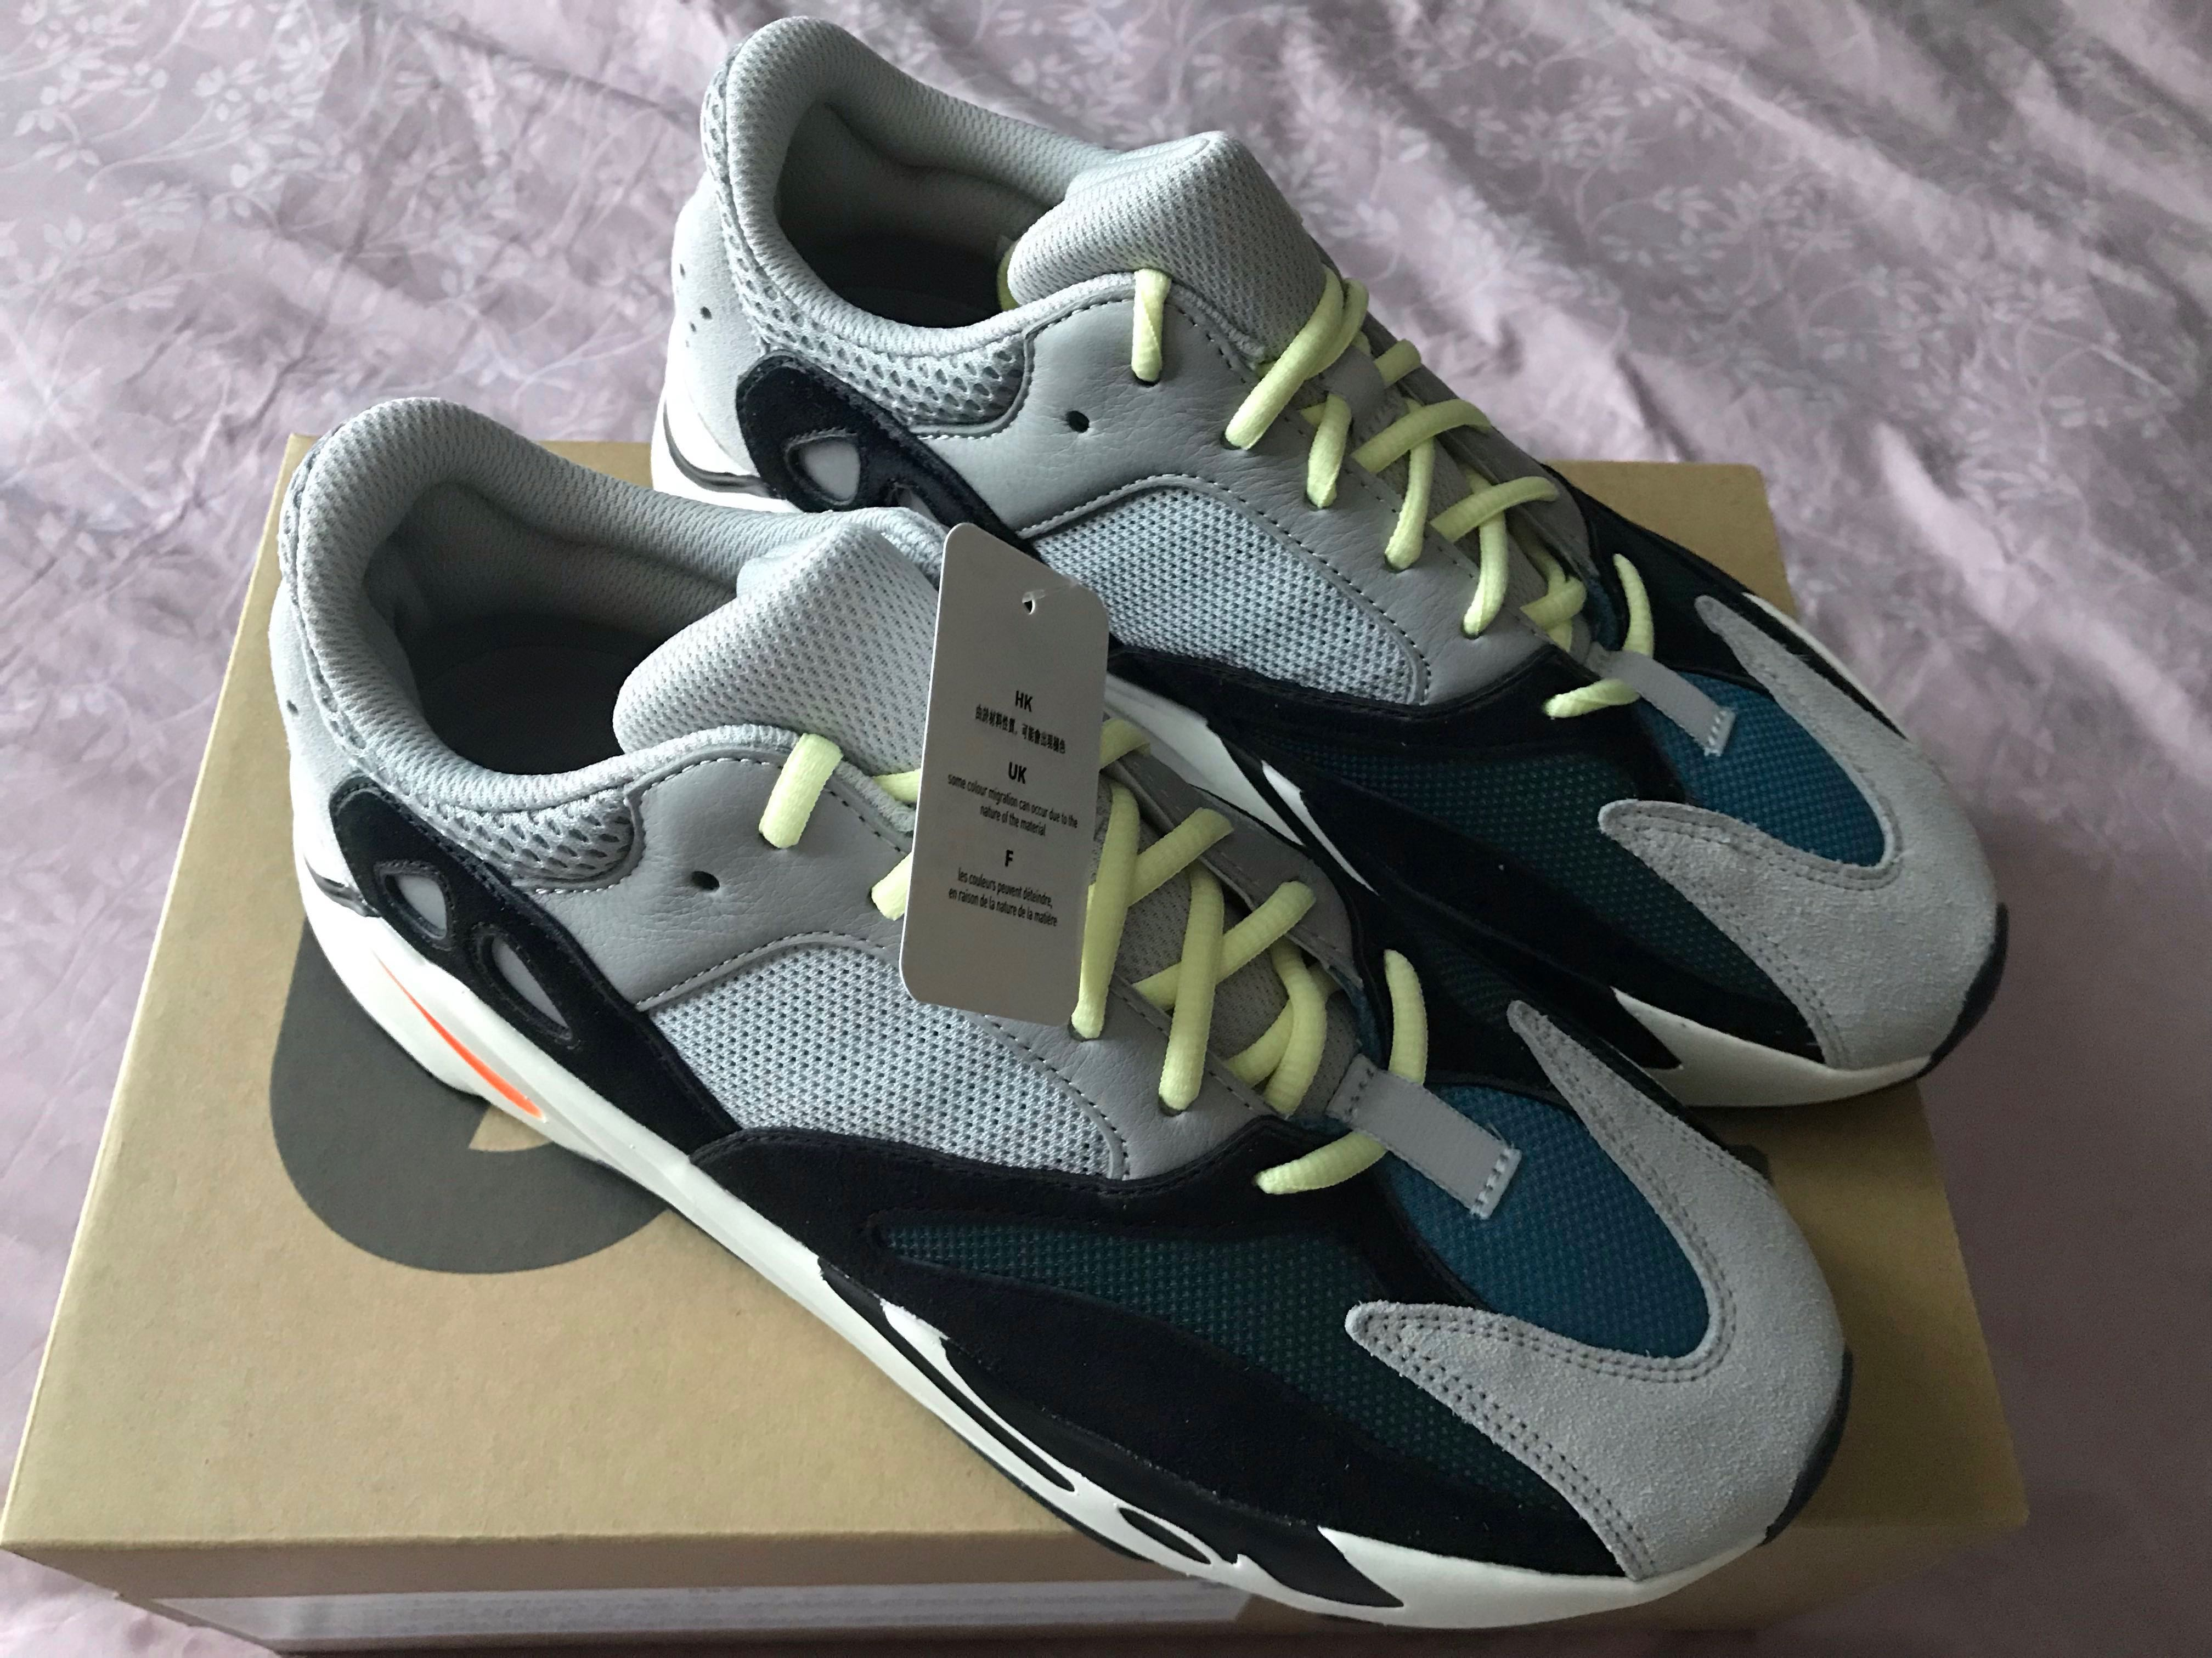 52a7de7b0bb Yeezy Wave Runner 700 (US 11)